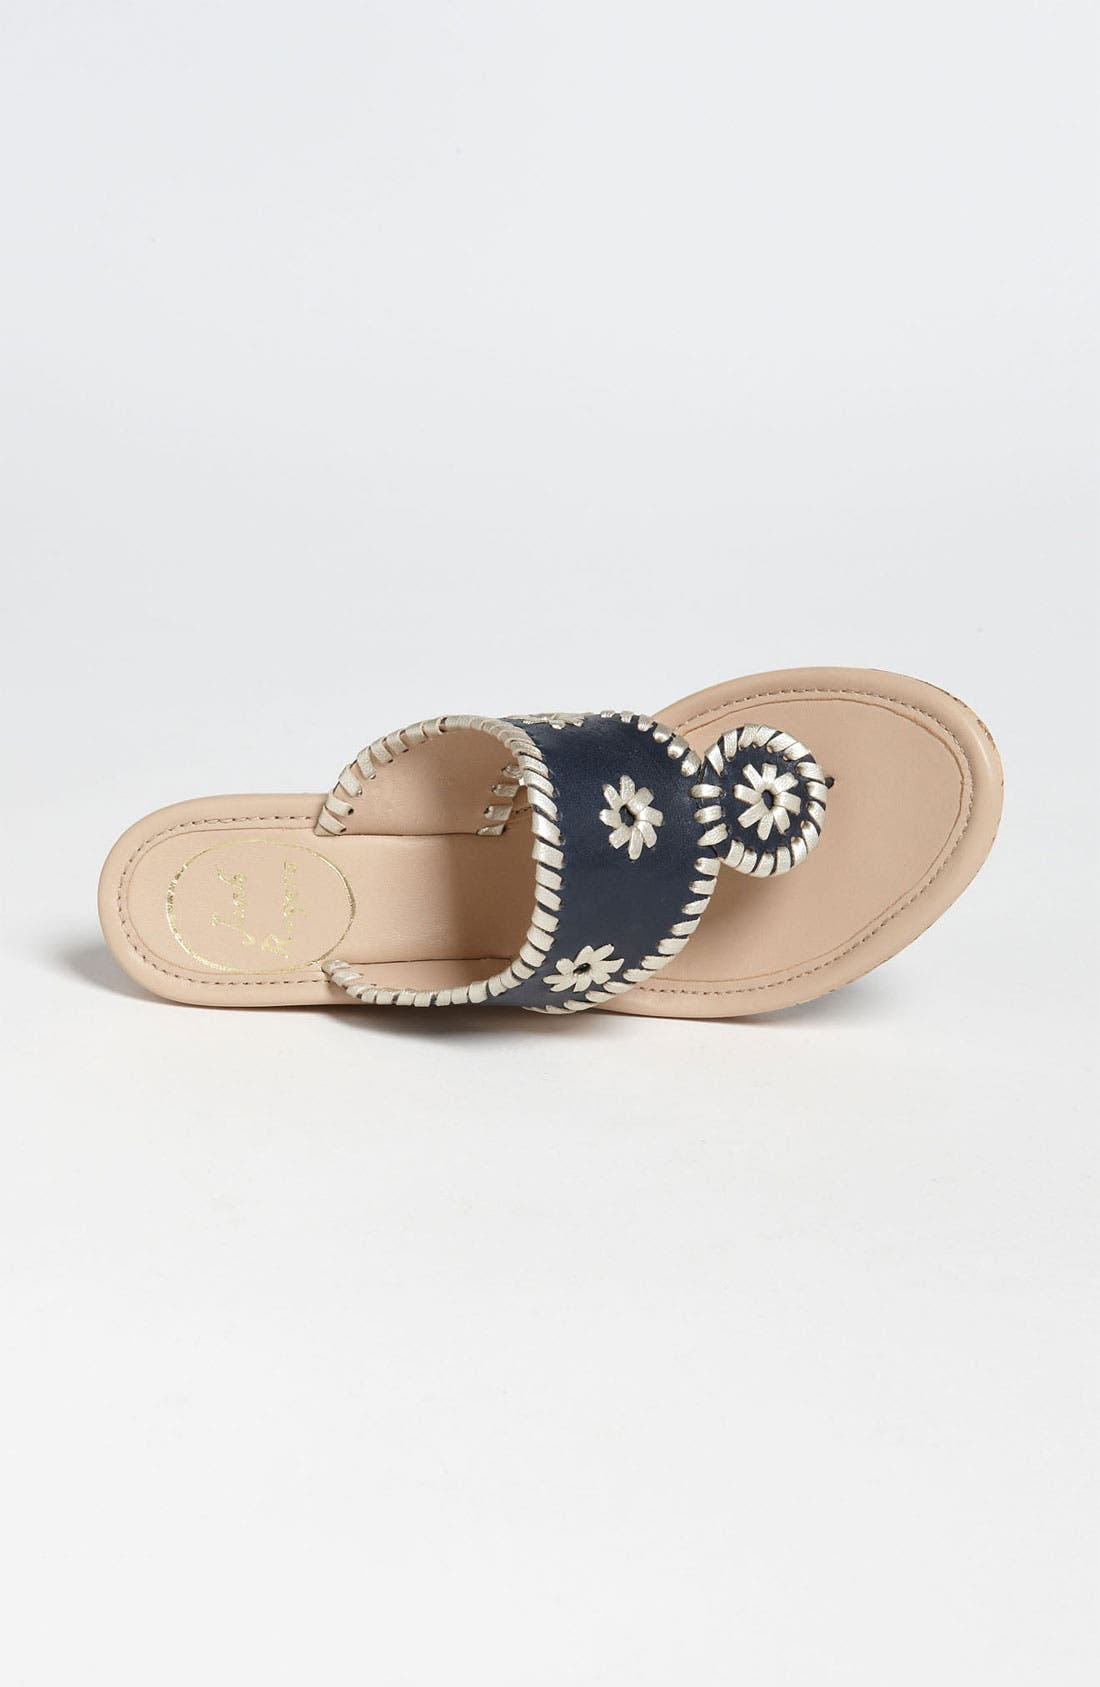 Alternate Image 3  - Jack Rogers 'Marbella' Cork Wedge Sandal